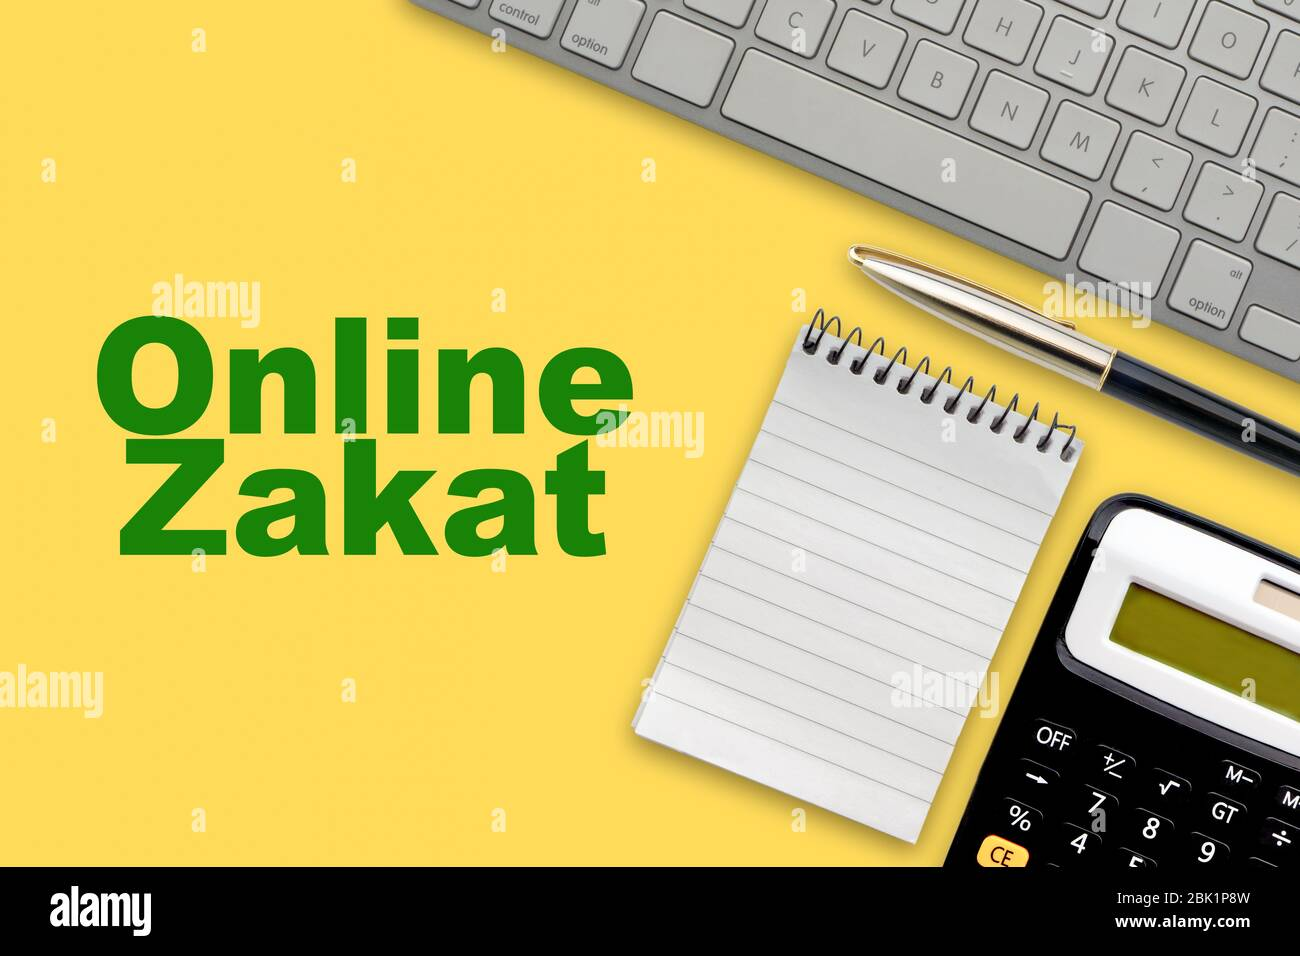 zakat high resolution stock photography and images alamy https www alamy com online zakat islamic tax text with notepad calculator keyboard and fountain pen on yellow background zakat islamic tax business and islamic co image355925273 html